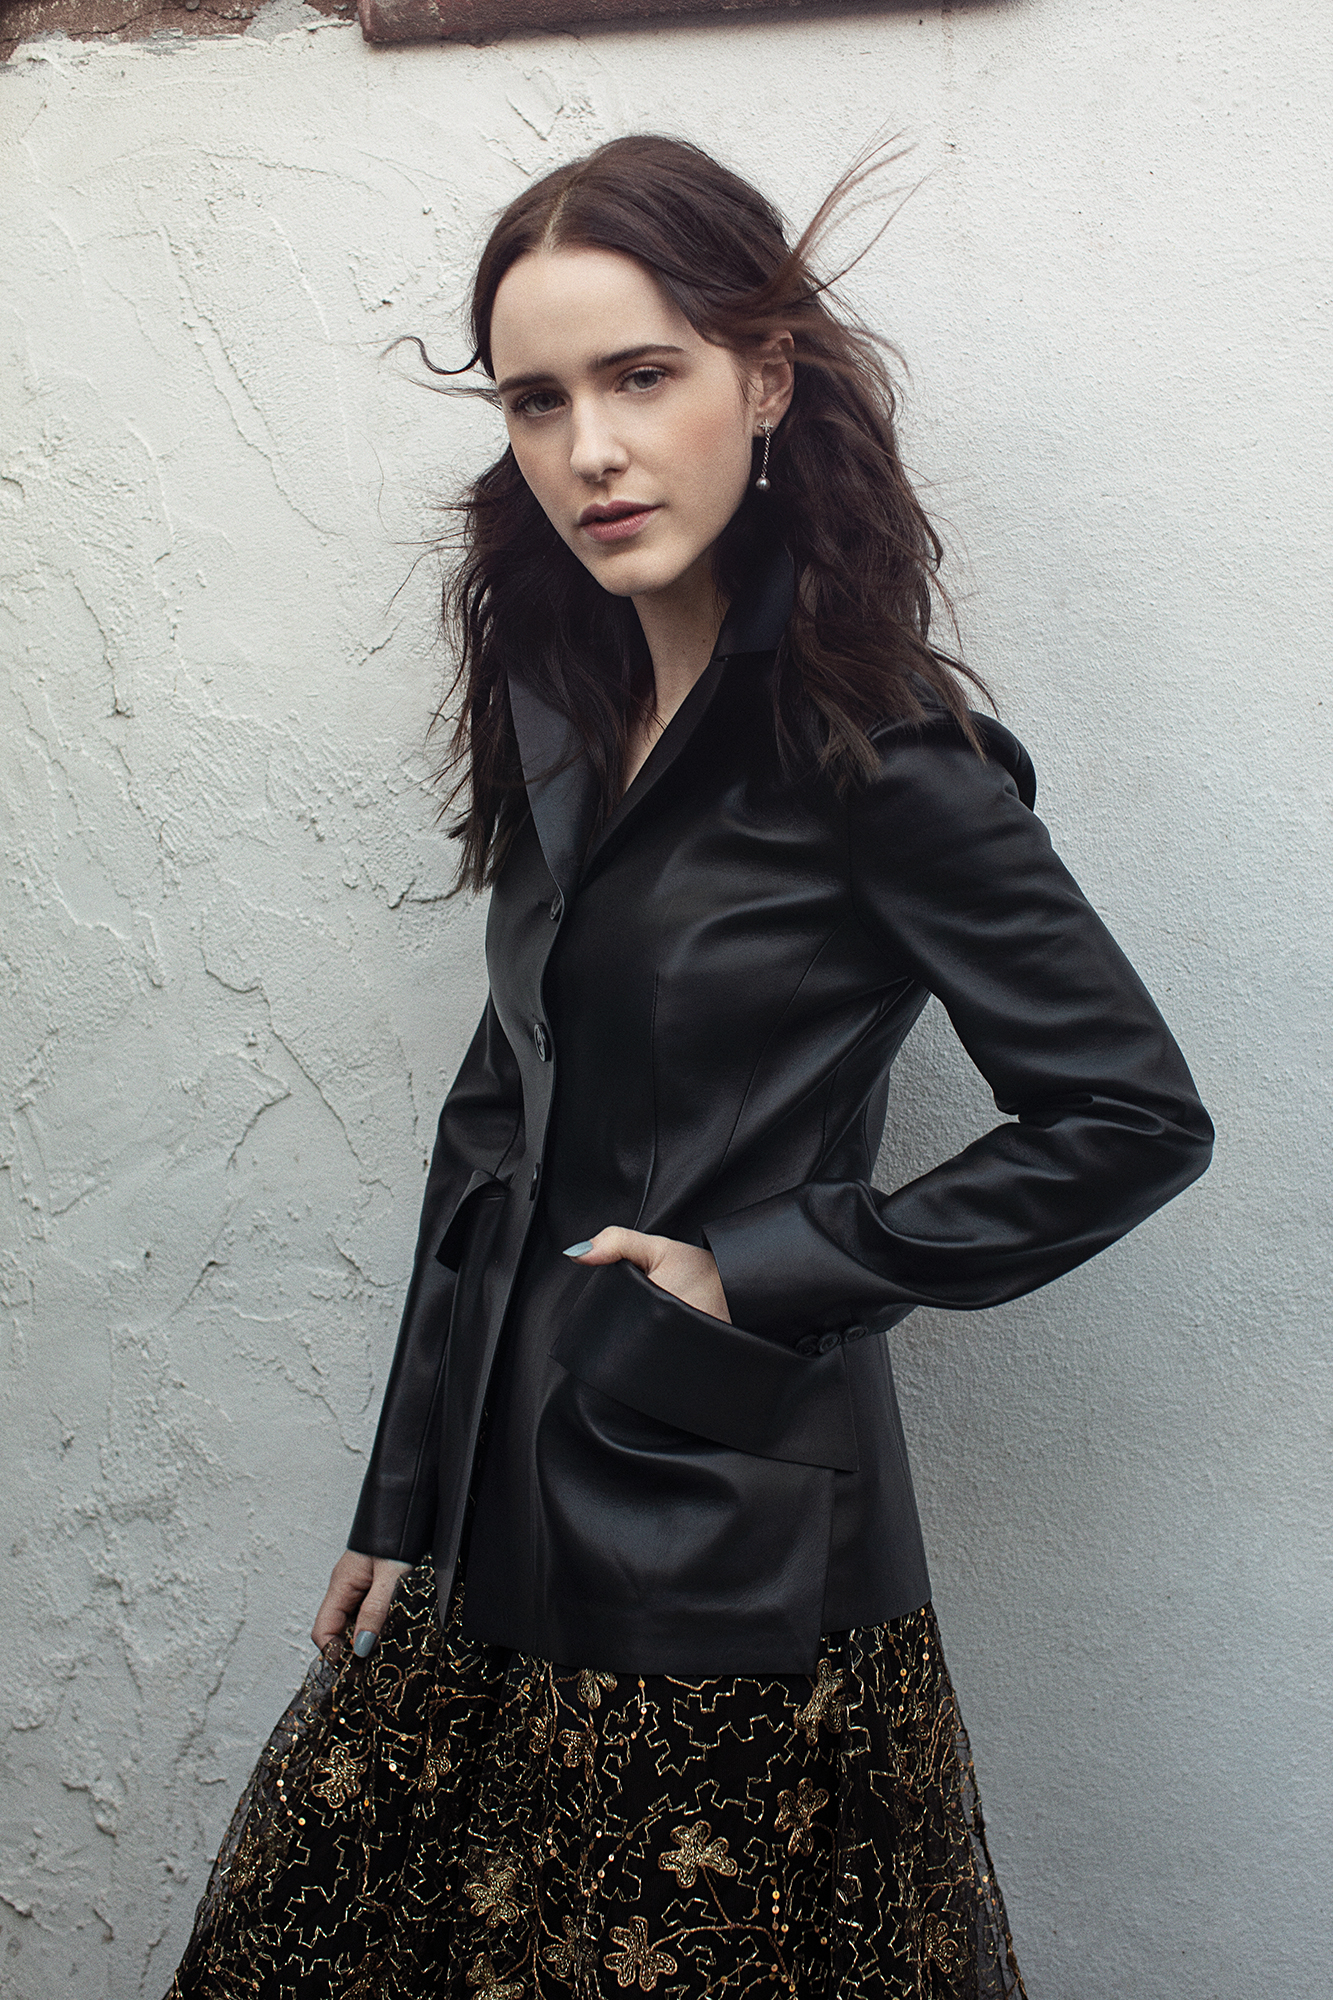 the_laterals_rachel_brosnahan_03.jpg